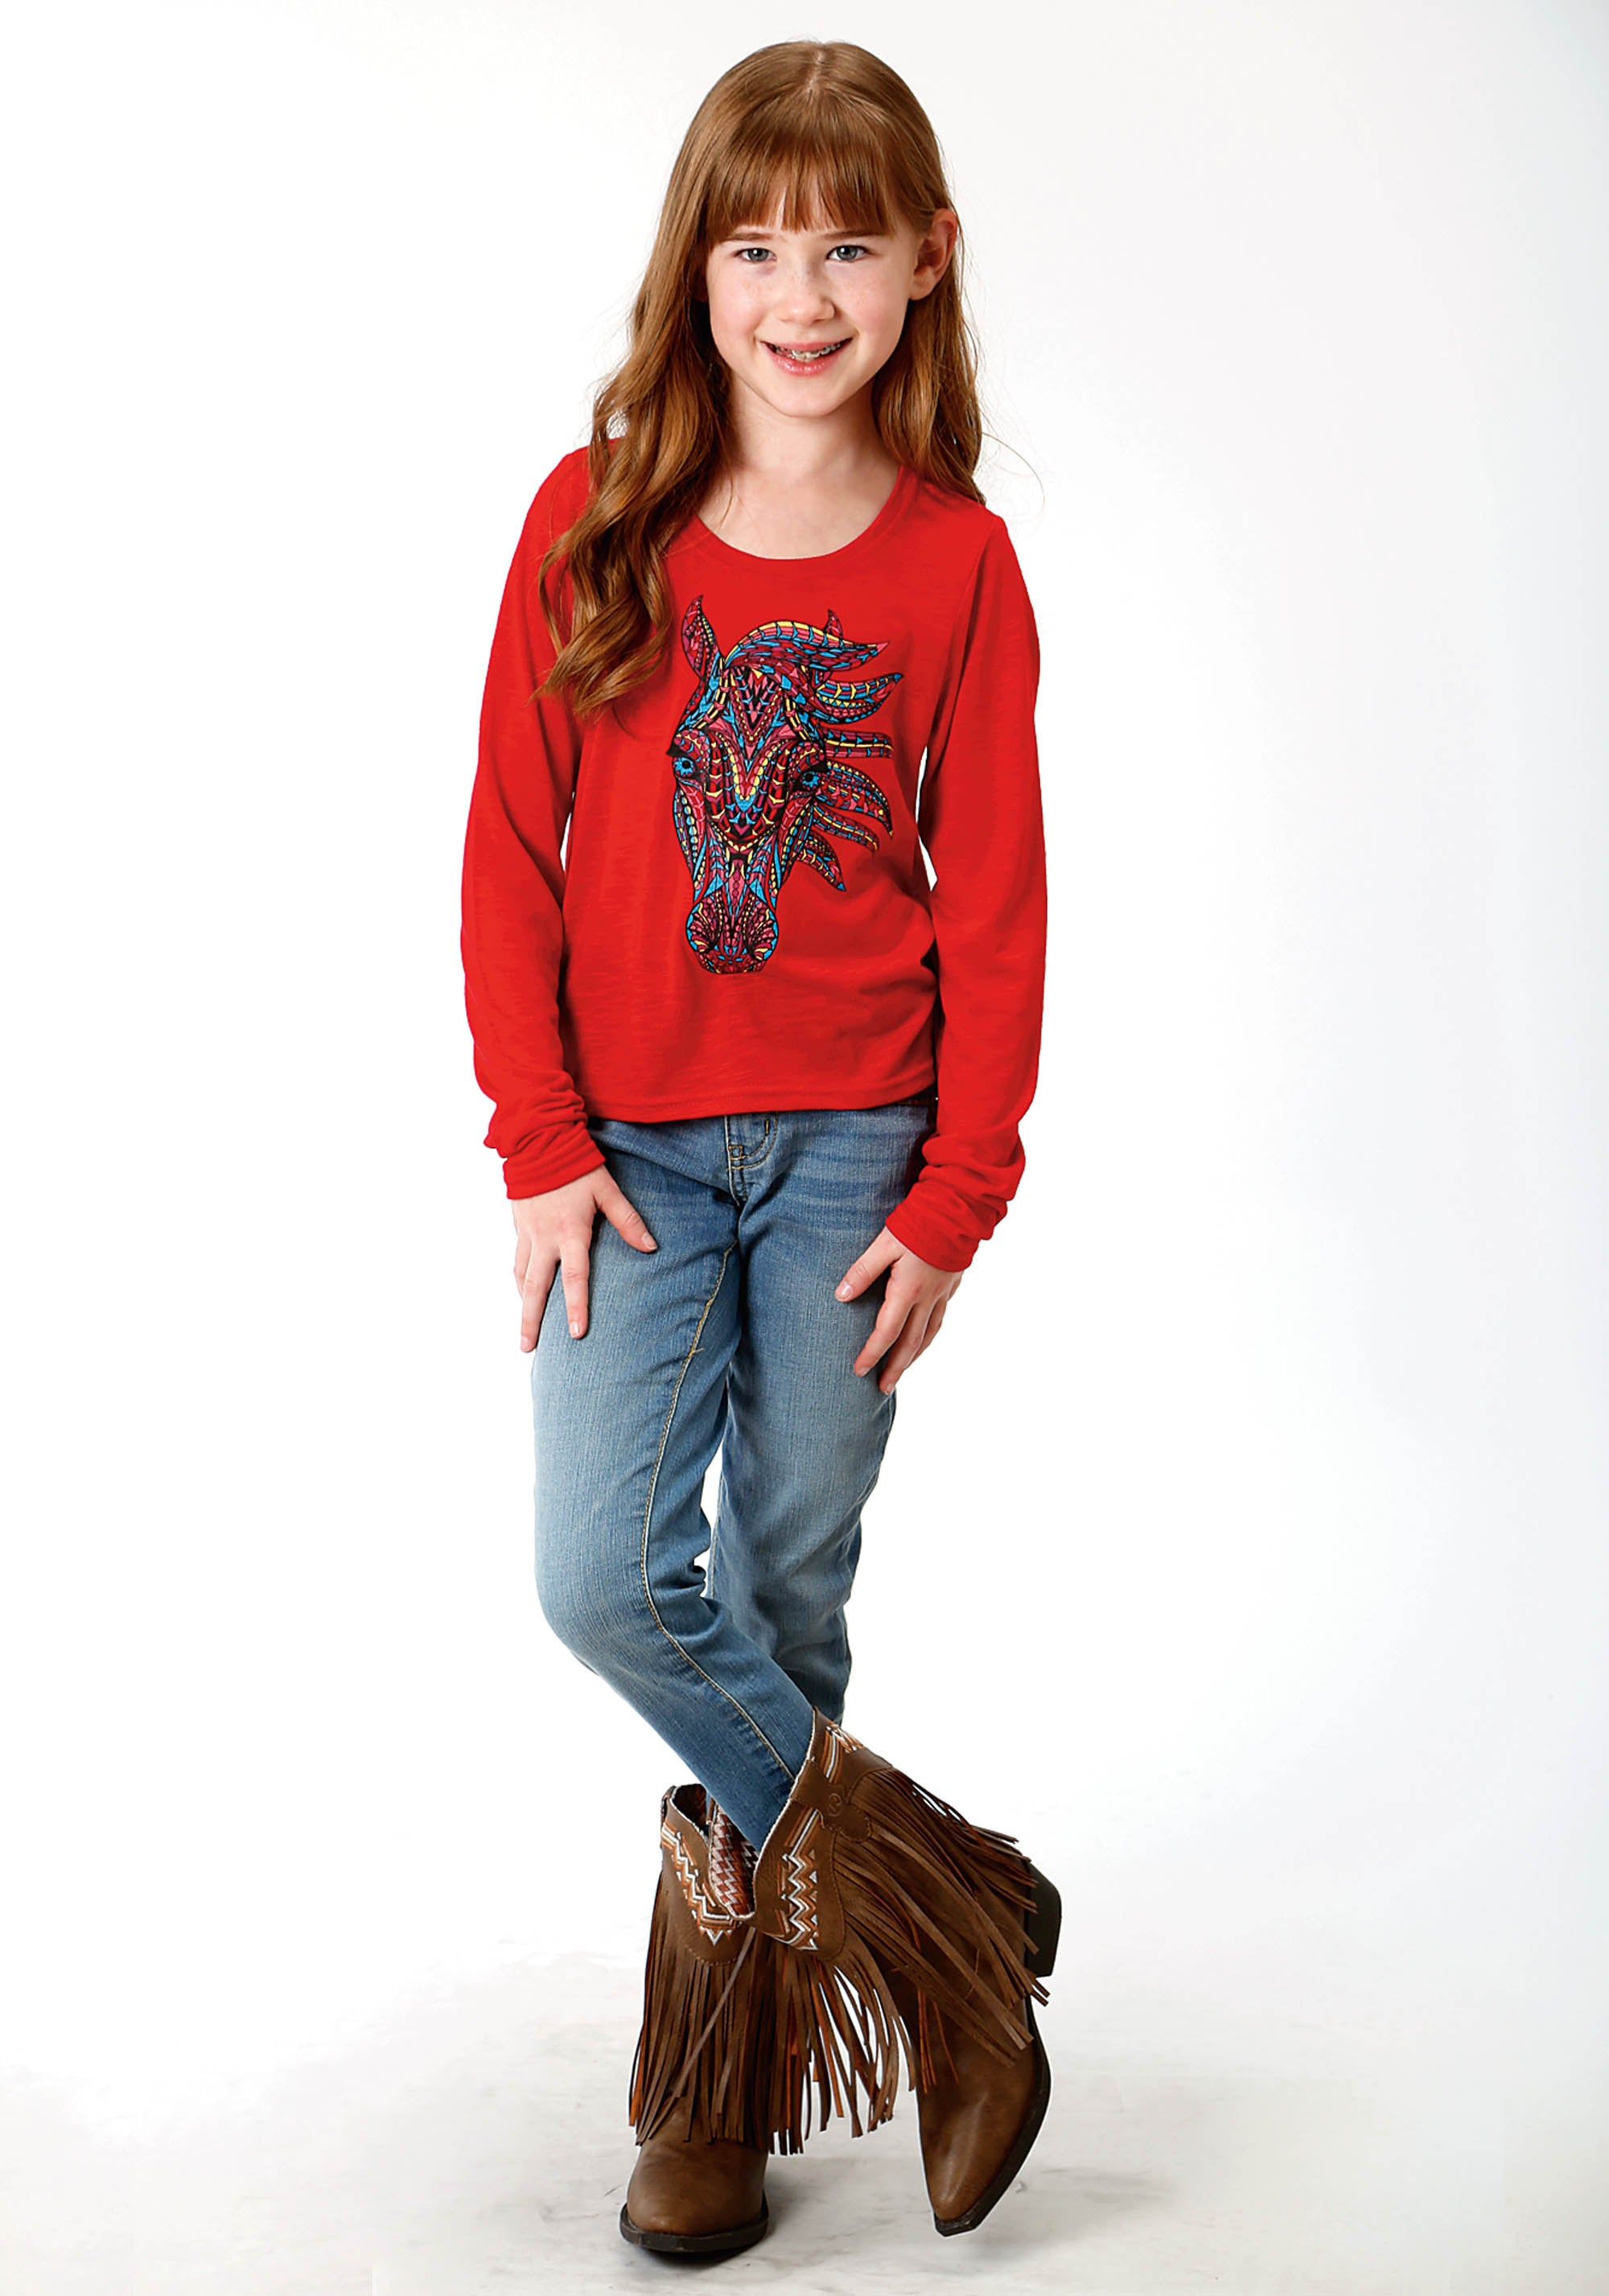 ROPER GIRLS RED 0489 P/R SLUB JERSEY GIRLS LS TEE FIVE STAR GIRLS LONG SLEEVE